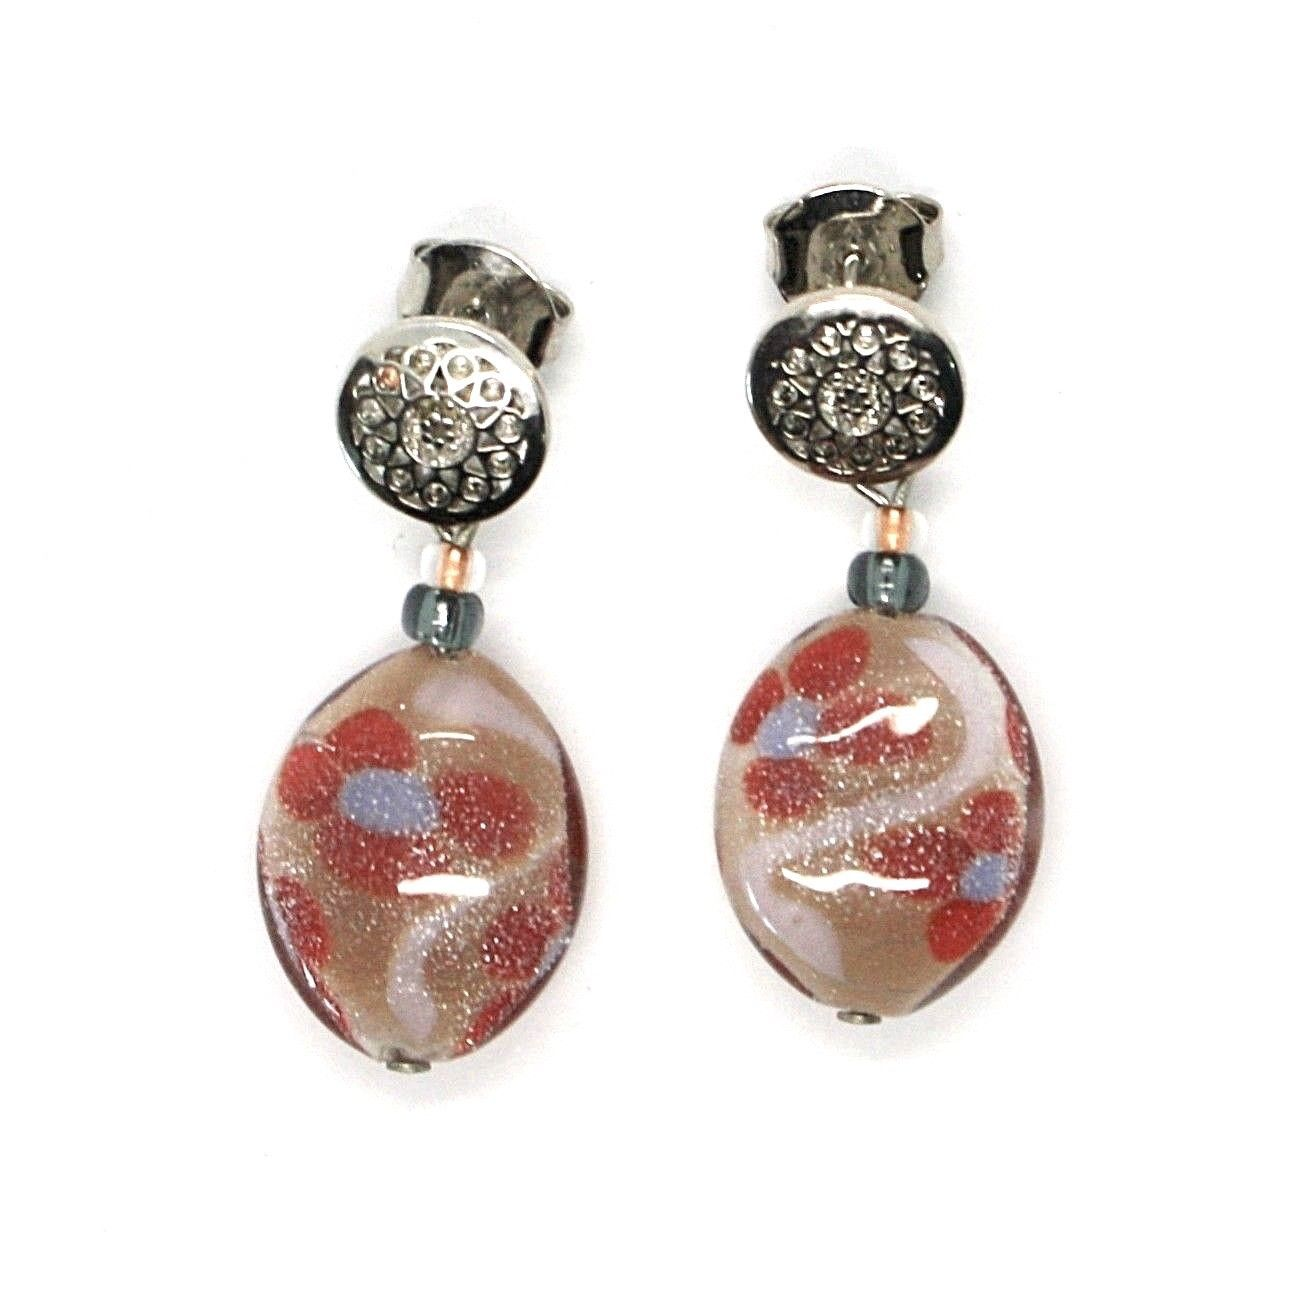 EARRINGS ANTICA MURRINA VENEZIA HANGING WITH MURANO GLASS RED OR534A11